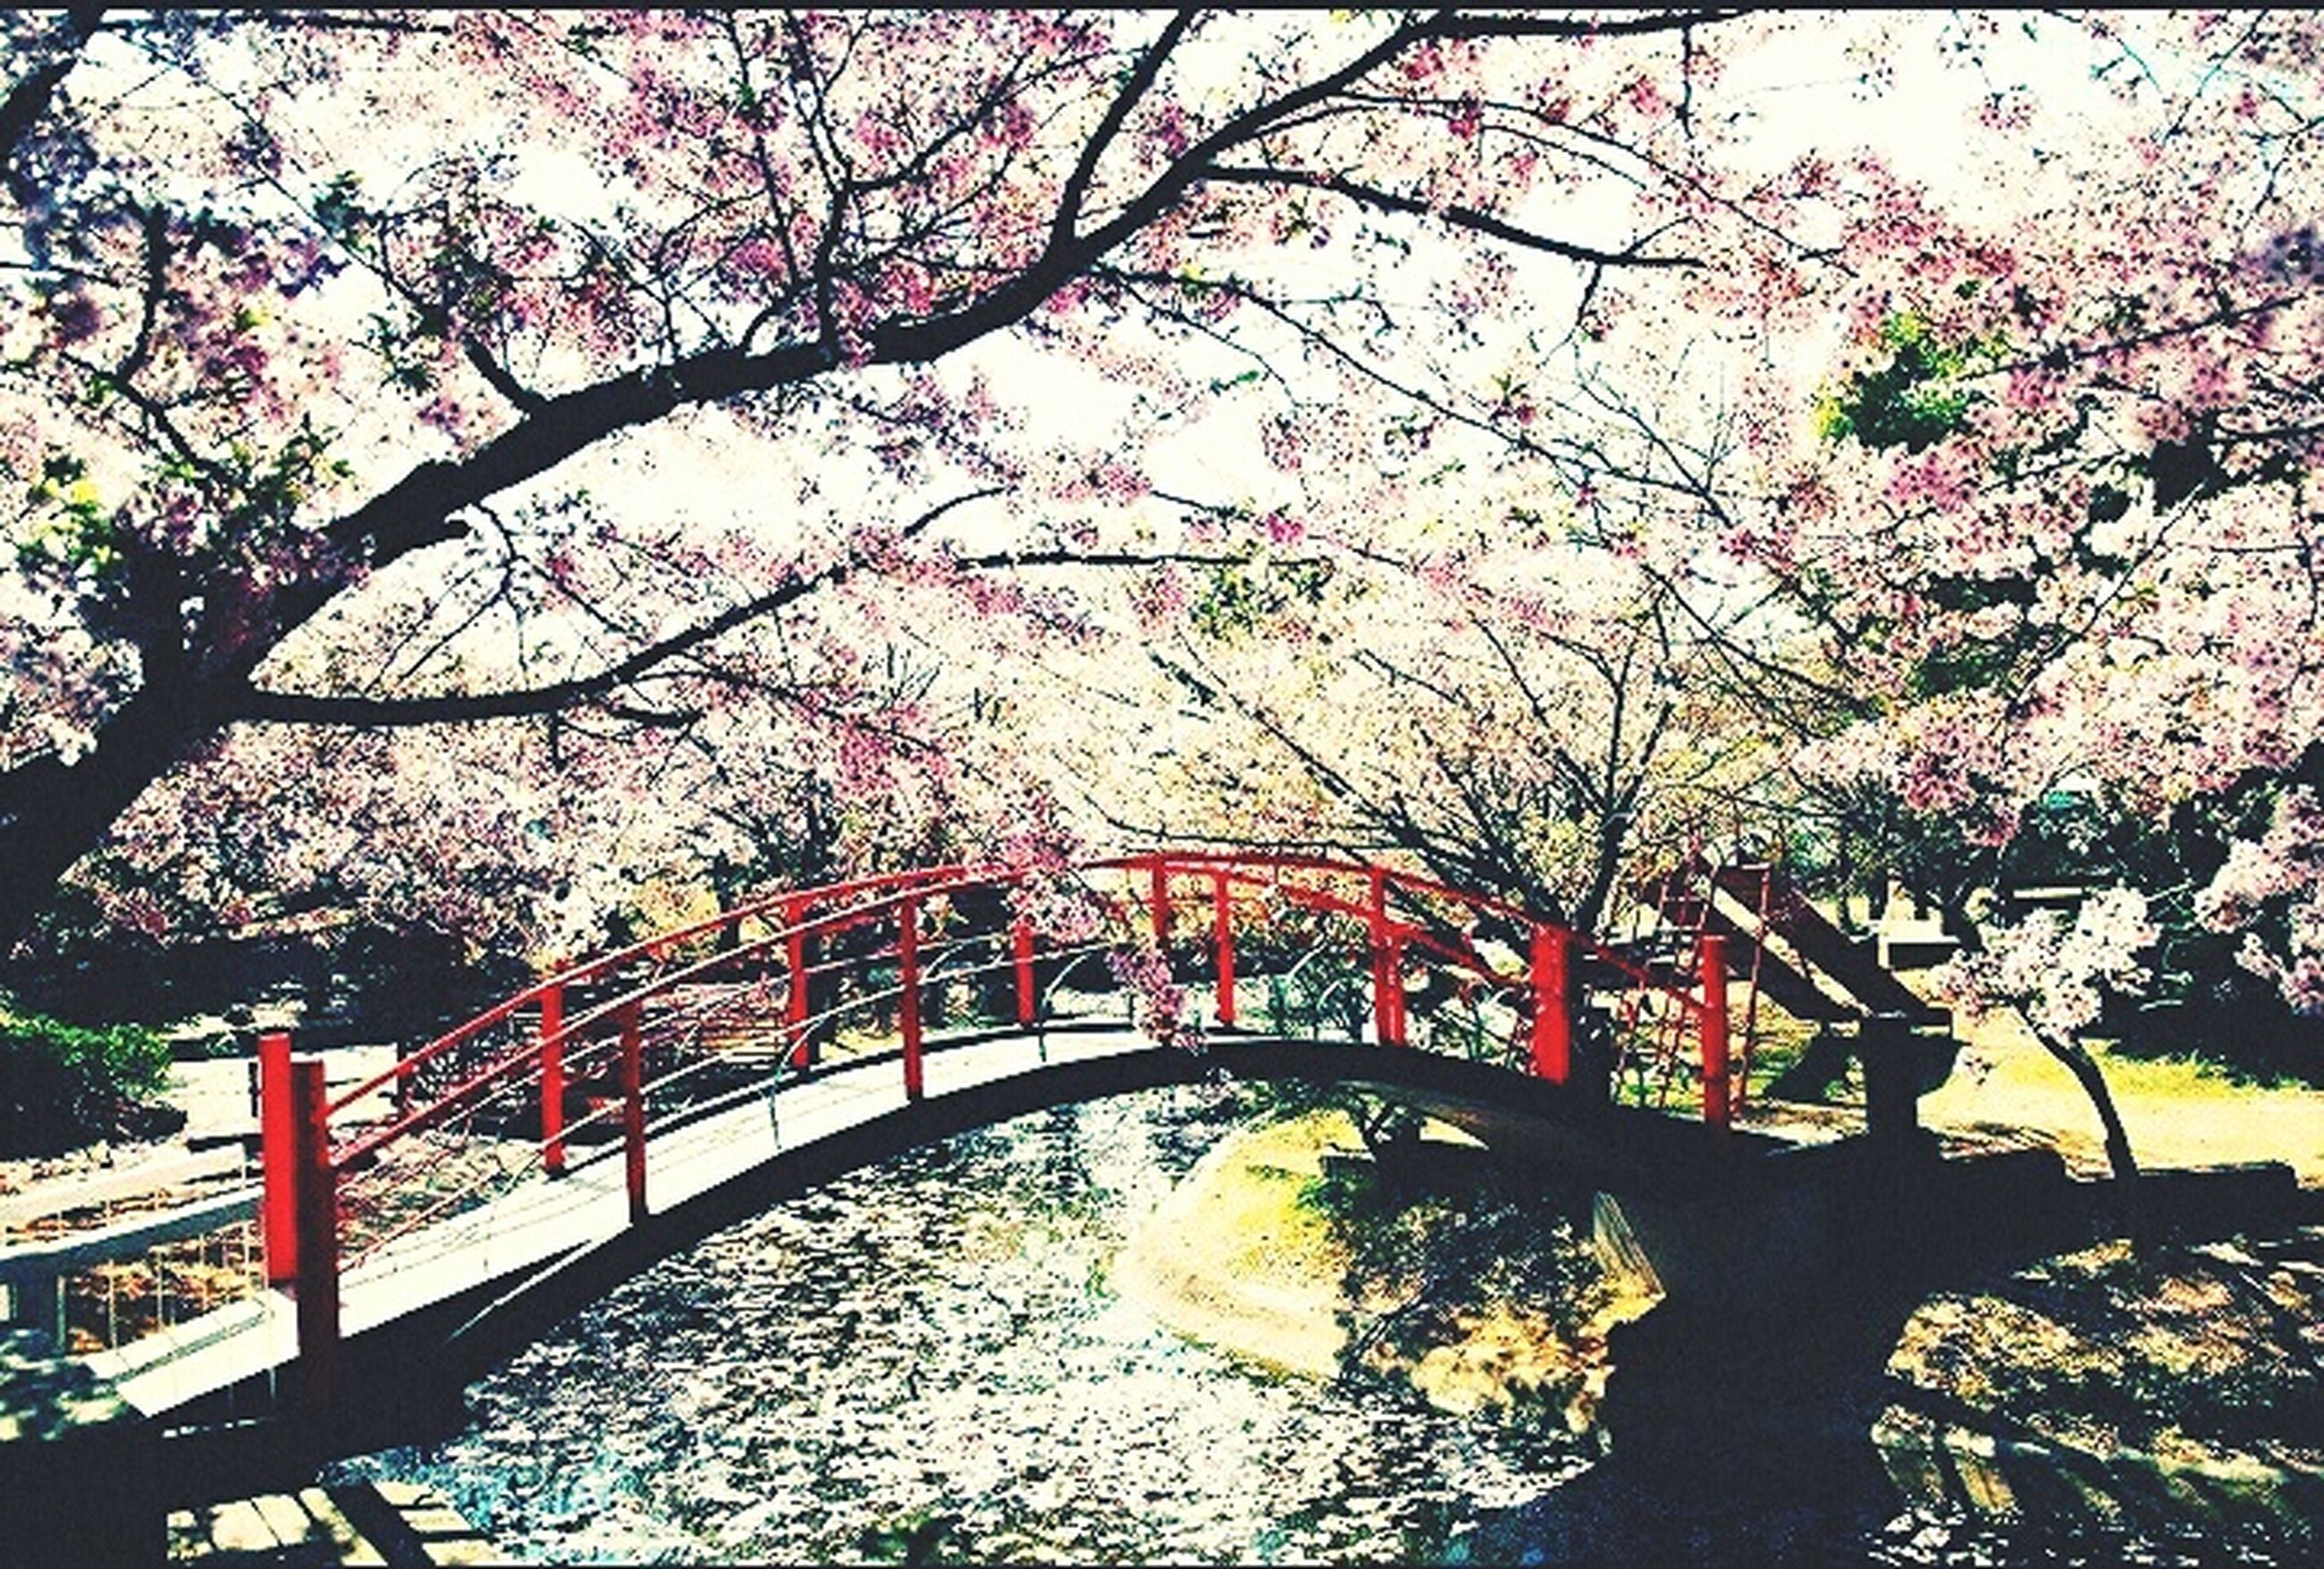 tree, flower, branch, growth, pink color, nature, beauty in nature, water, park - man made space, freshness, blossom, railing, cherry blossom, tranquility, day, fragility, park, outdoors, sunlight, built structure